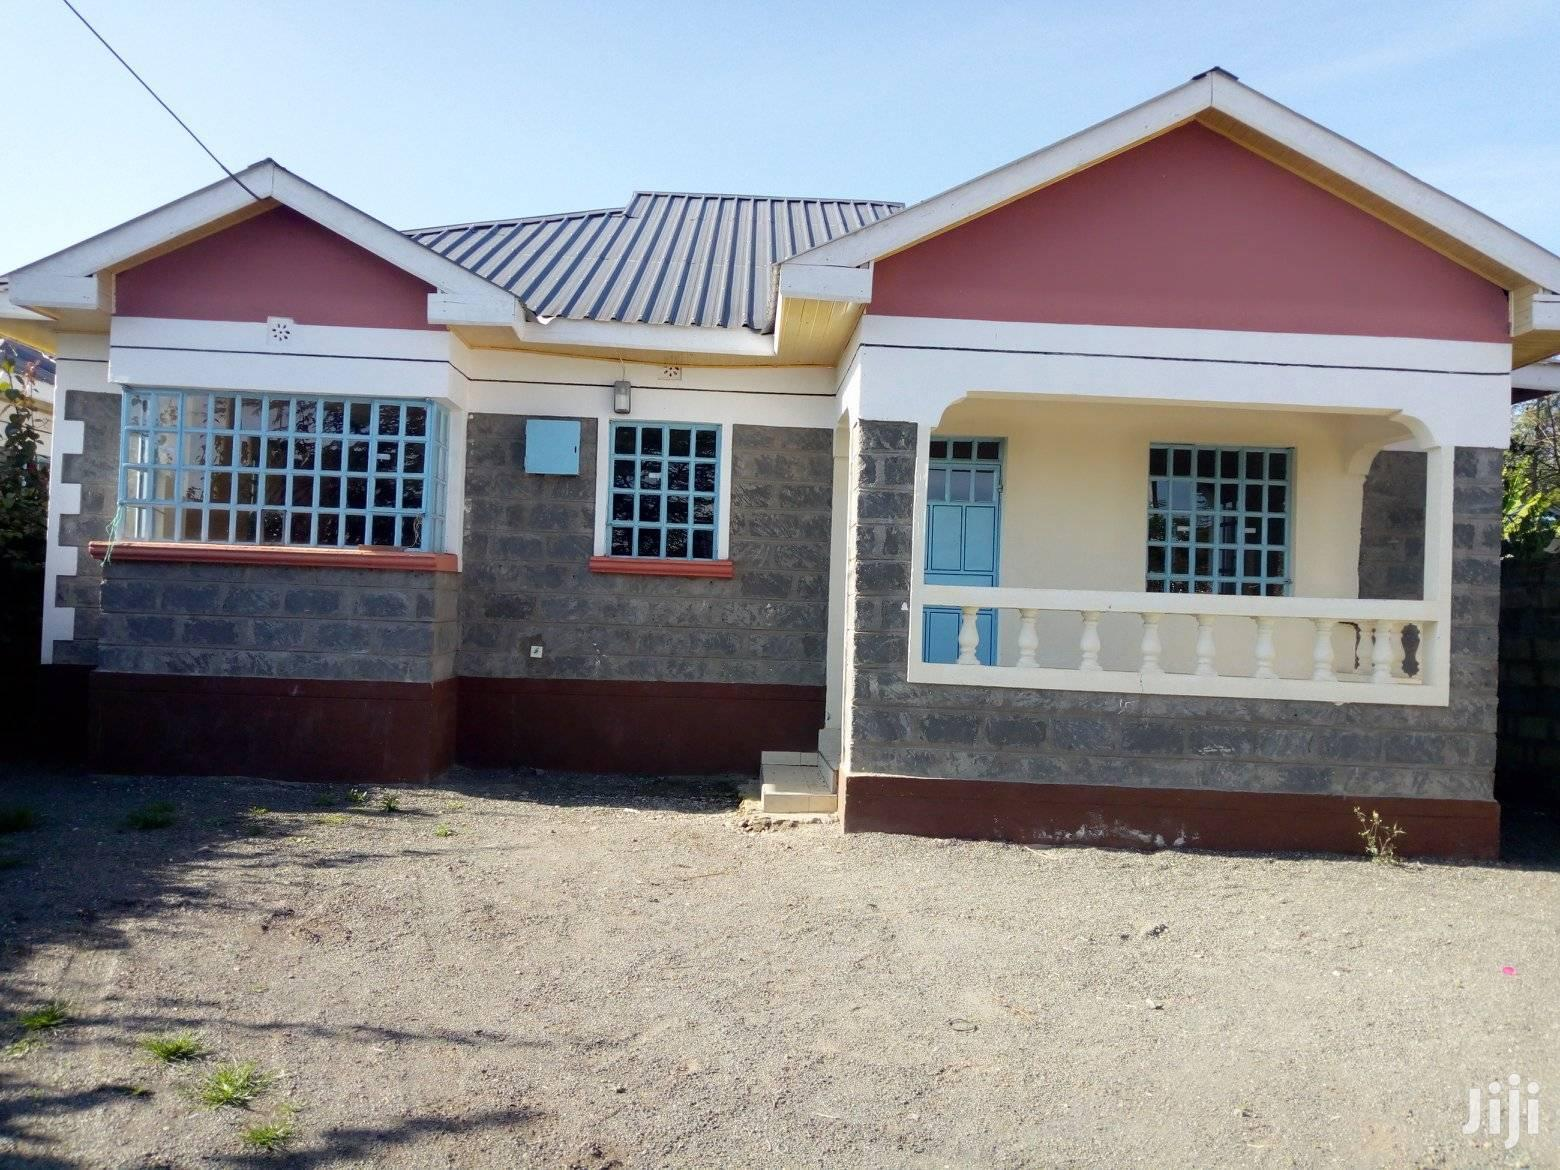 3 Bdrms Bungalow With SQ To Rent In Ongata Rongai, Rimpa